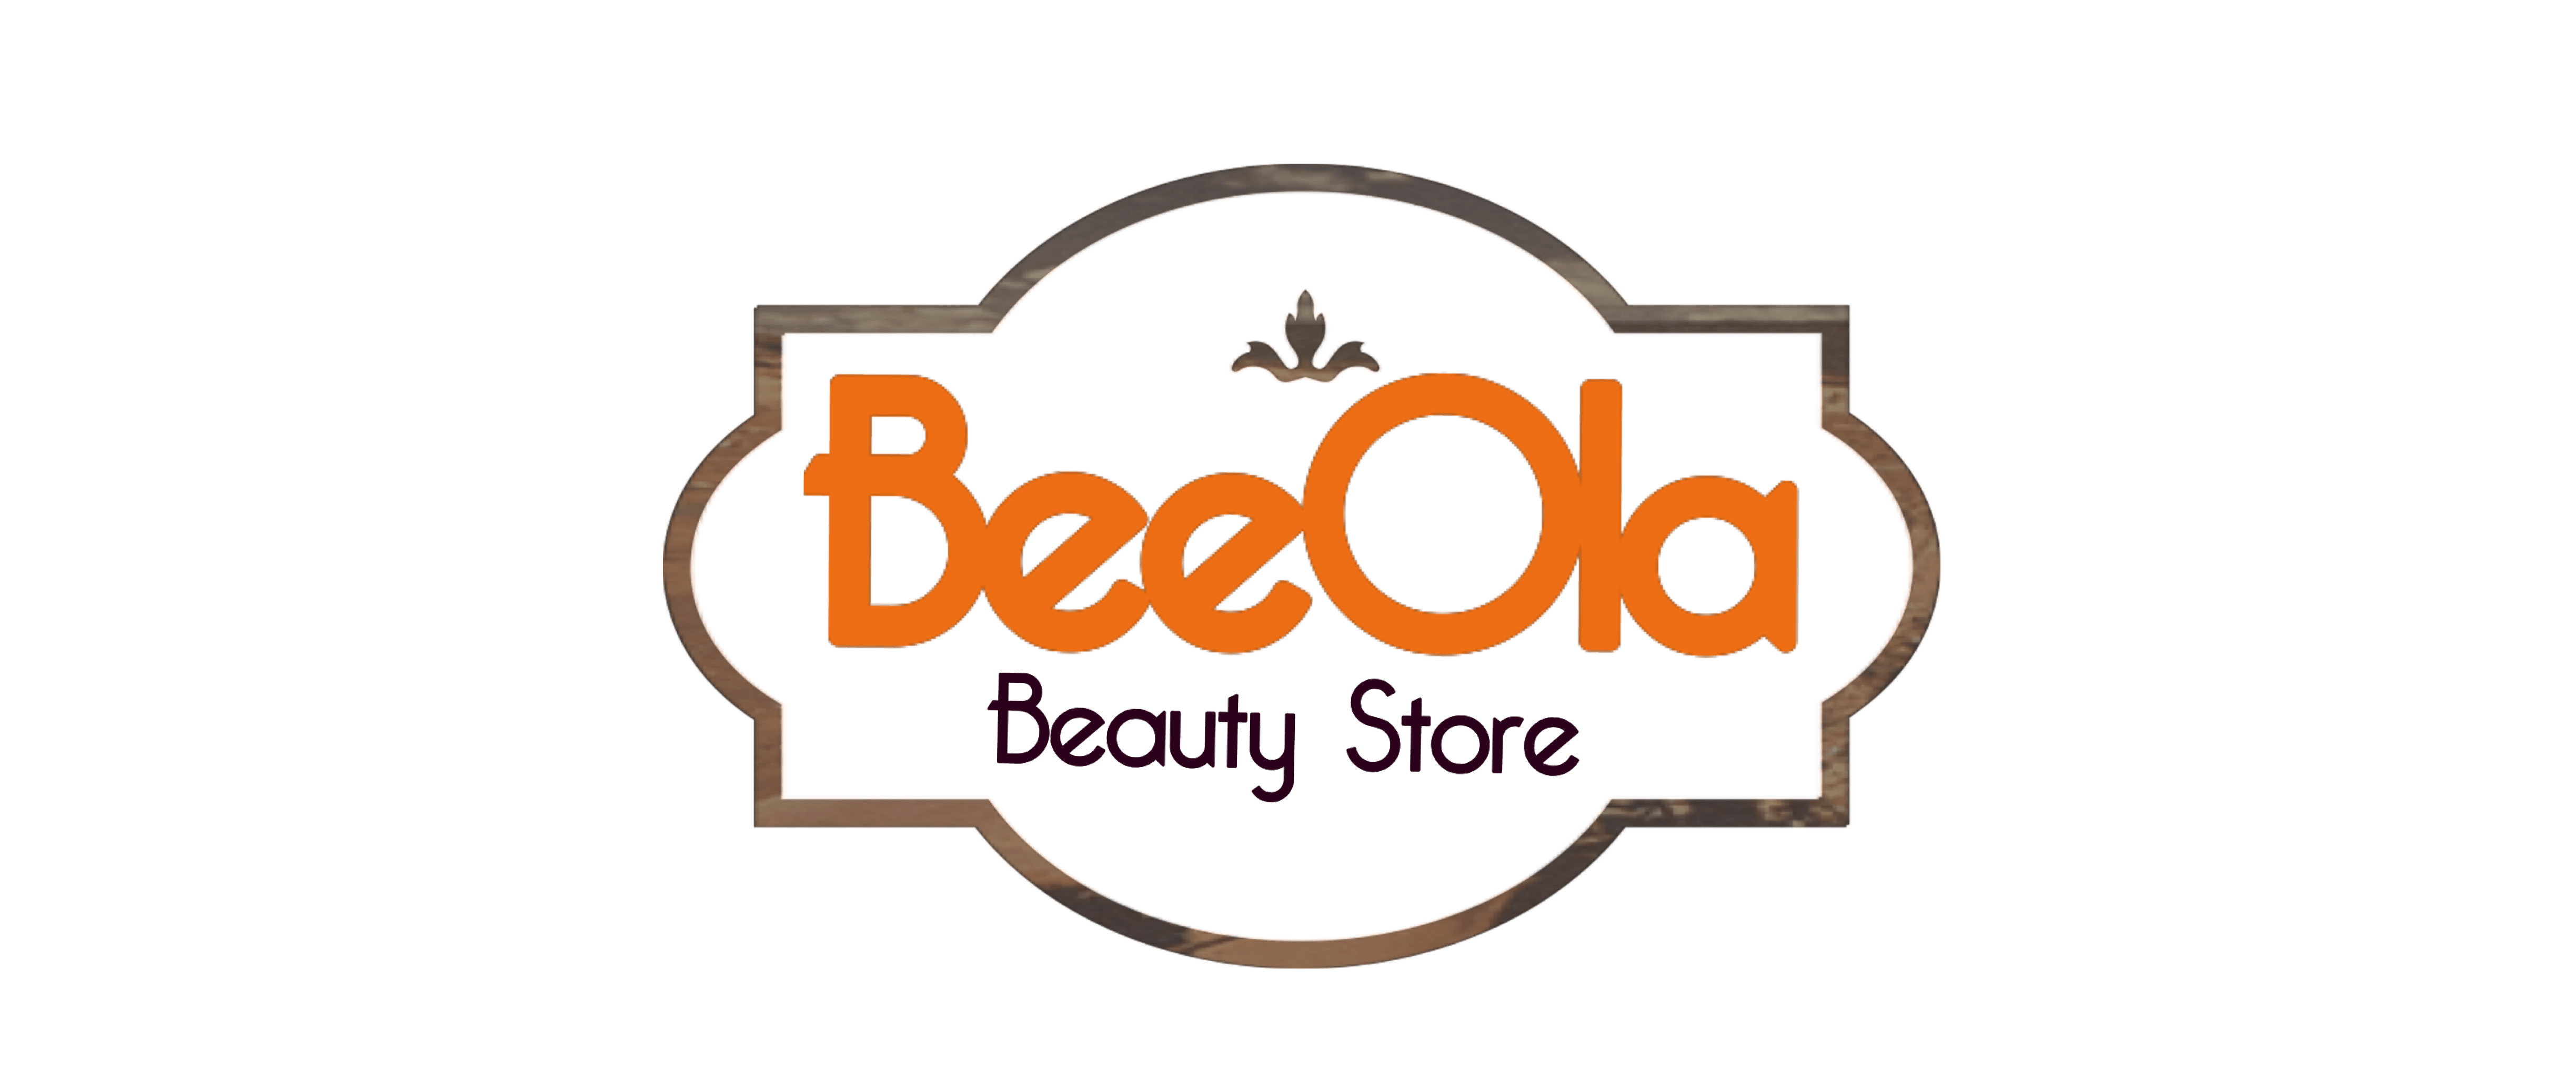 Beeola Beauty